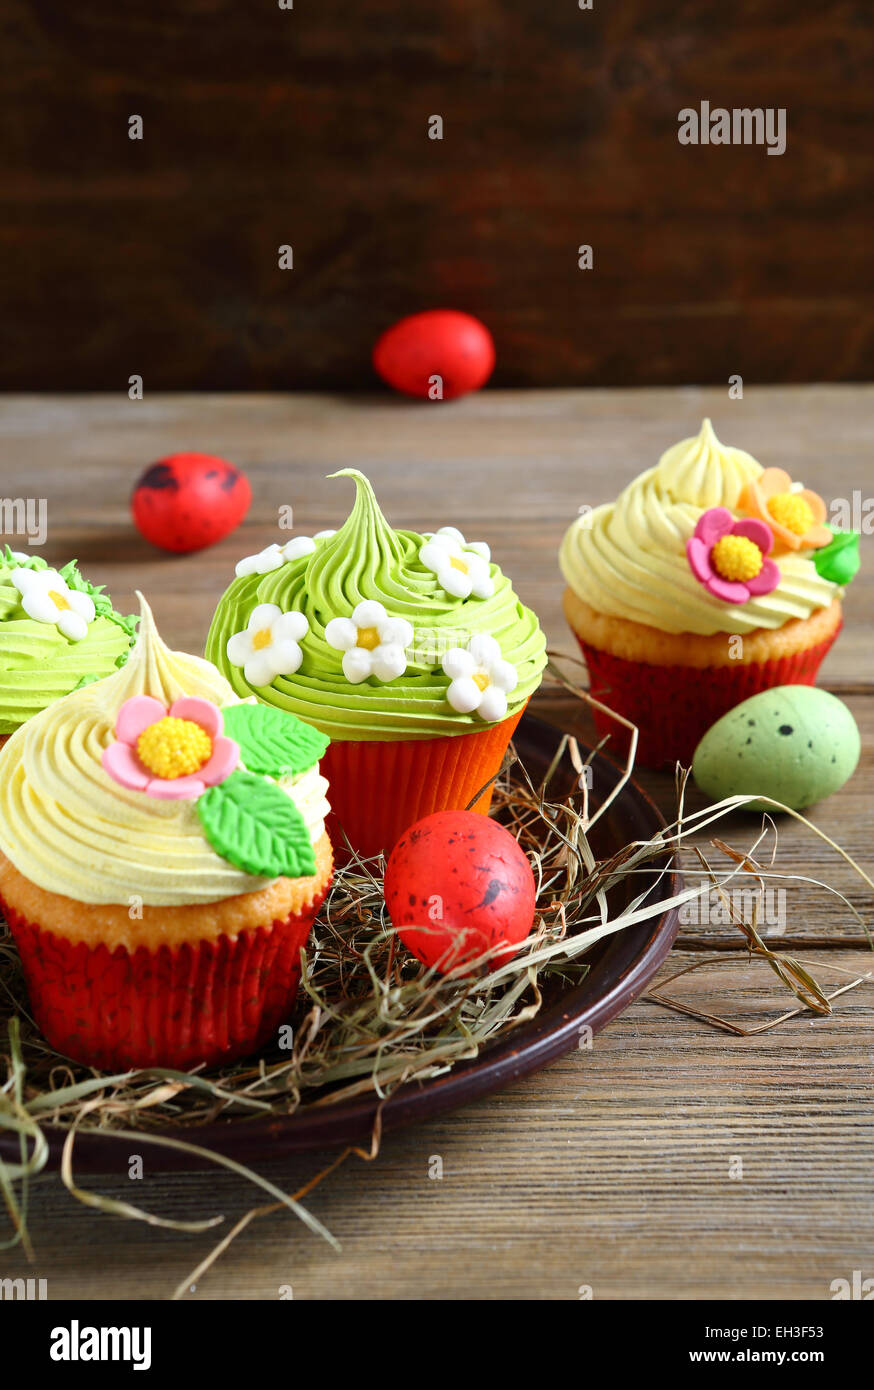 Easter cupcakes and eggs, festive food - Stock Image